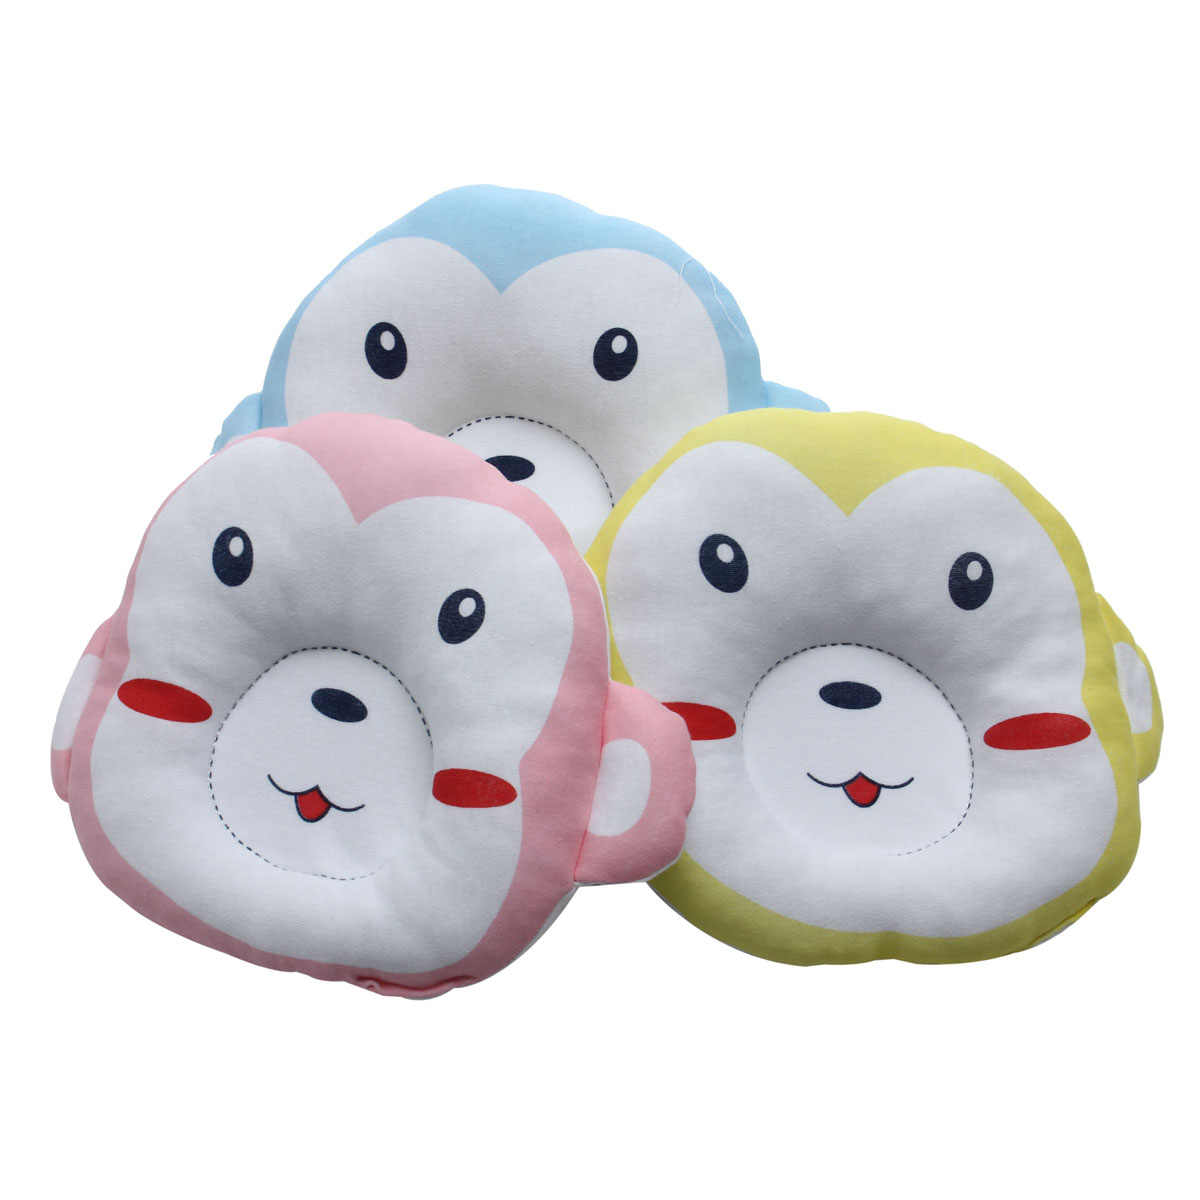 2pcs/lot Monkey type cotton Newborn infant Baby shaping pillow Breastfeeding Feeding Nursing Arm Support Cushion pillow